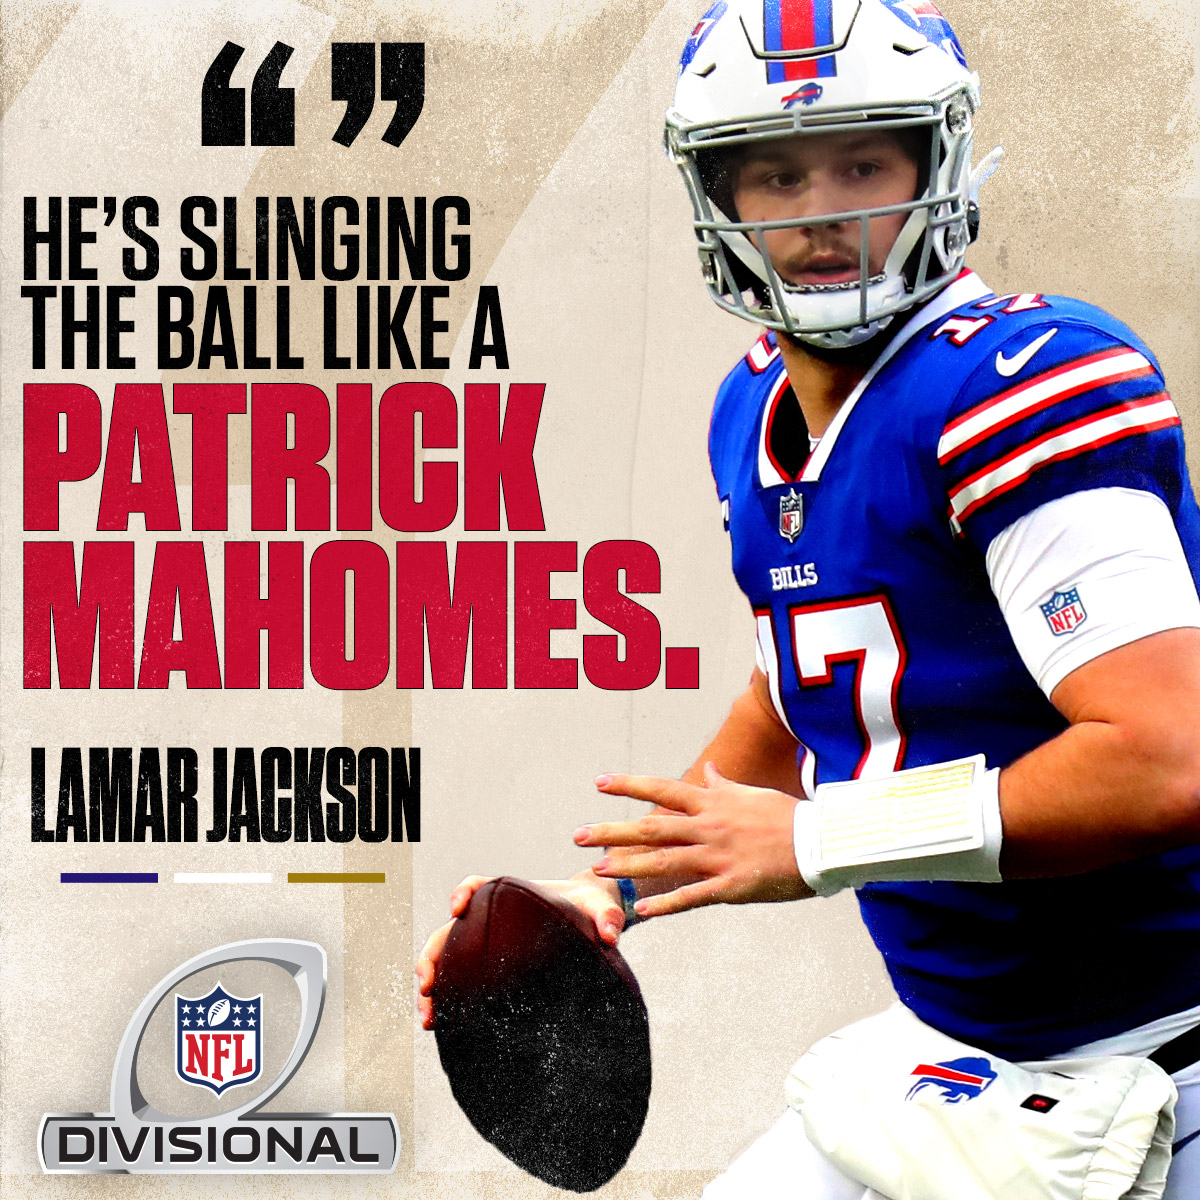 Lamar Jackson showed praise for Josh Allen ahead of Saturday night's #DivisionalRound matchup.   The only downside to seeing them square off... one of their seasons will end.